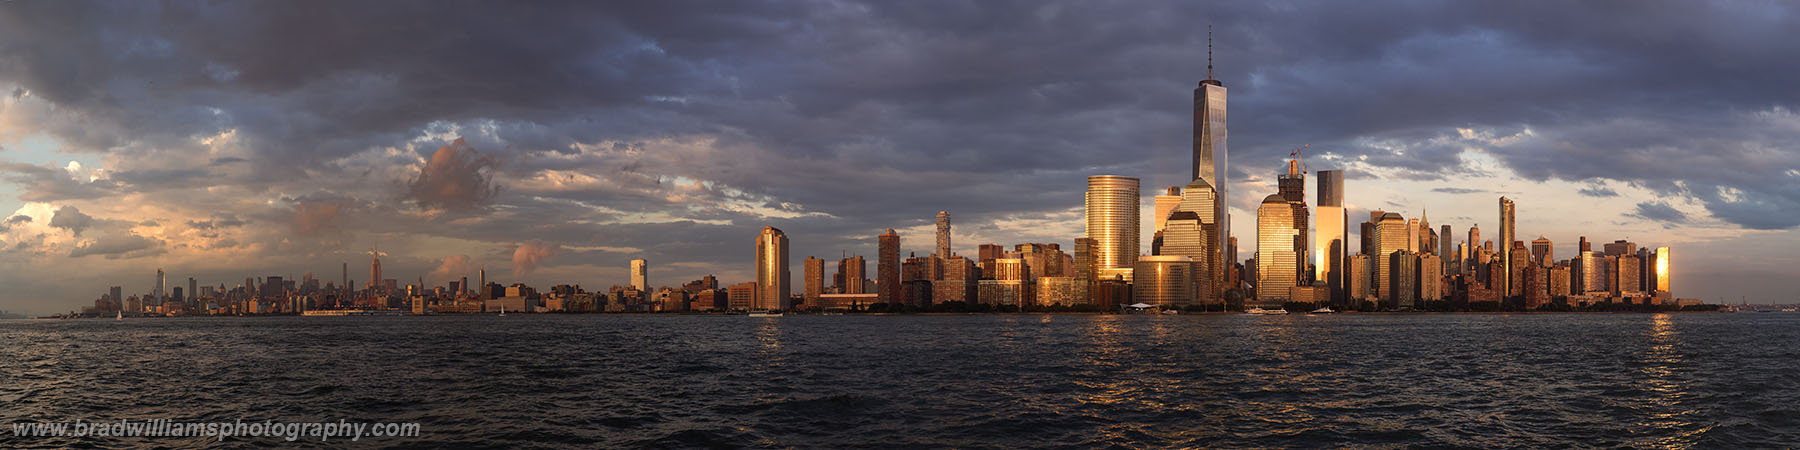 New York, New Jersey, Skyline, Sunset, Photo, photo